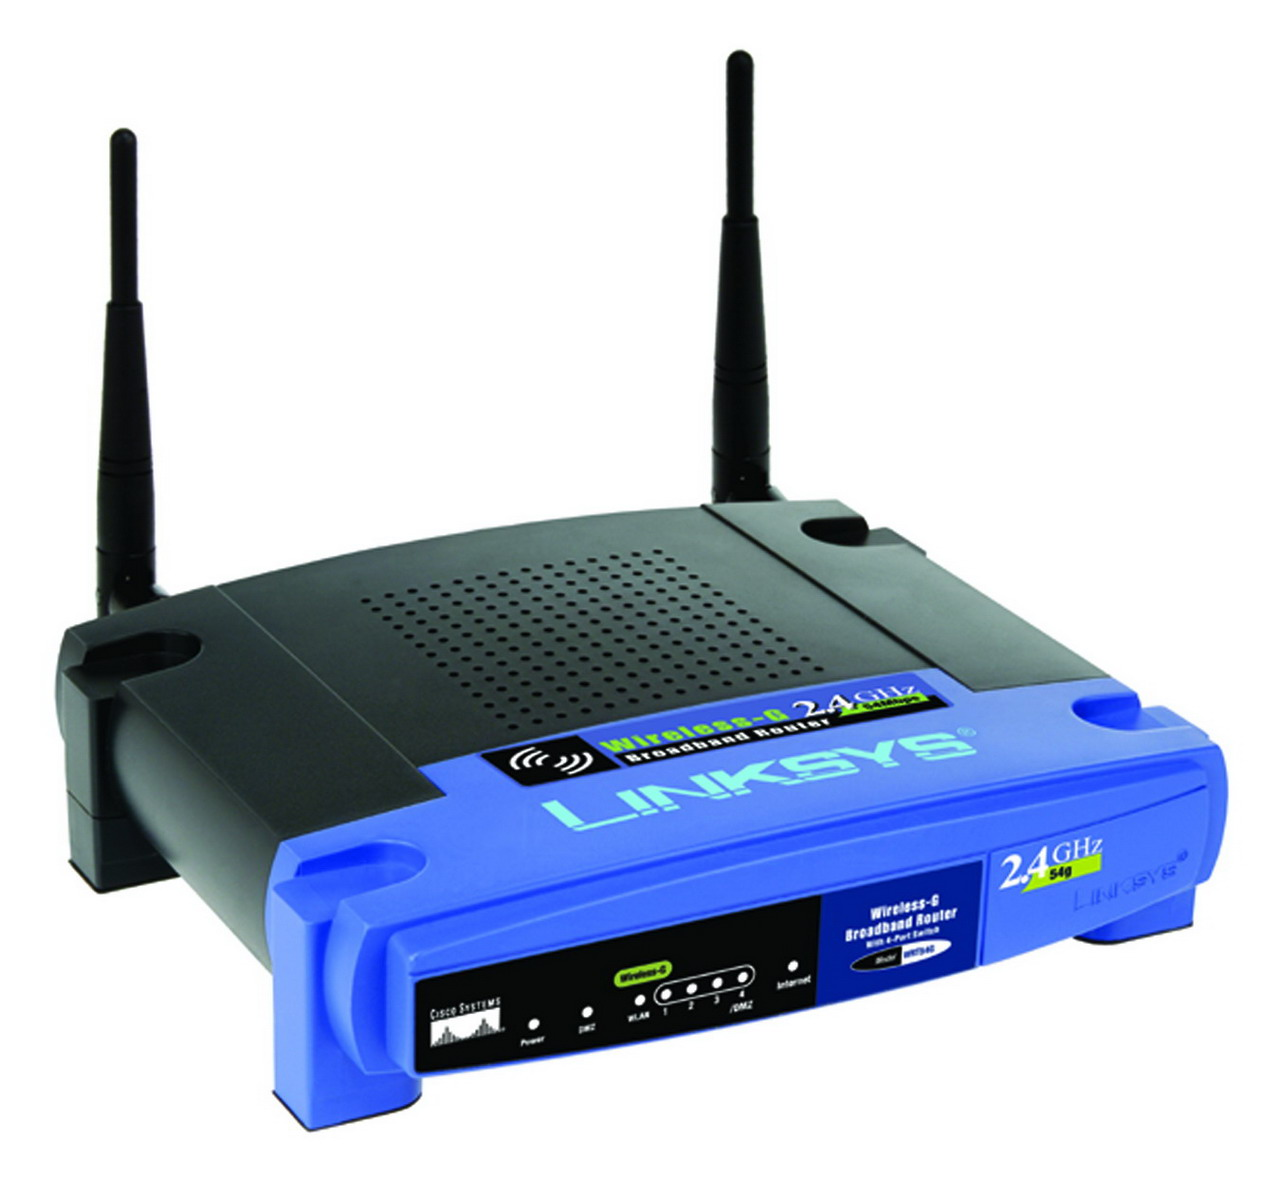 How to Reset the Linksys WRT54G Wireless-G Router